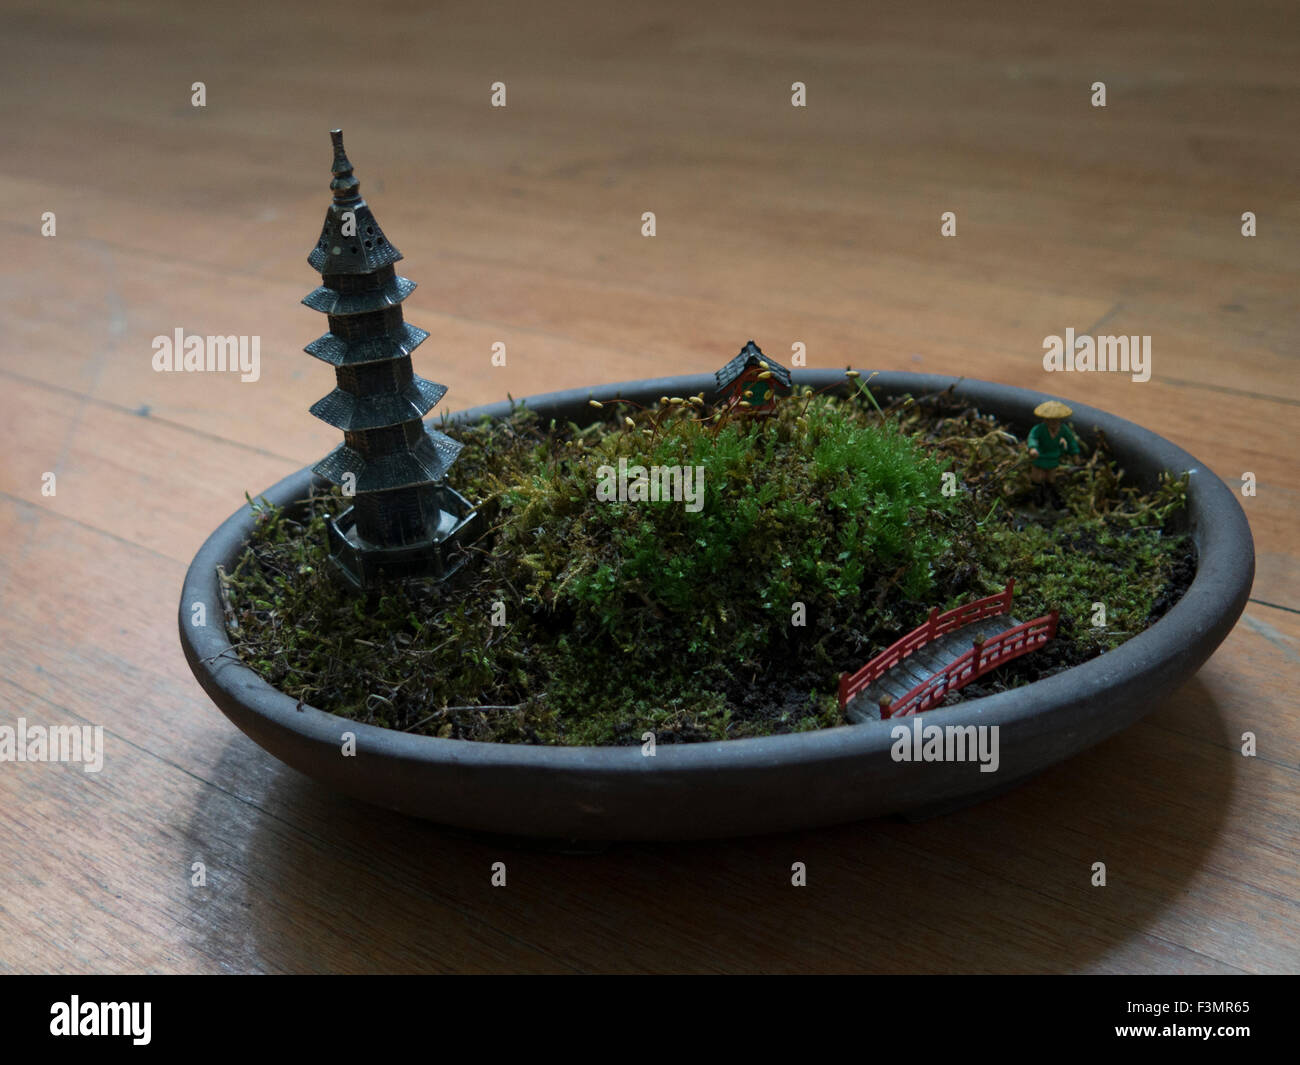 A dish garden with a Japanese theme Stock Photo Royalty